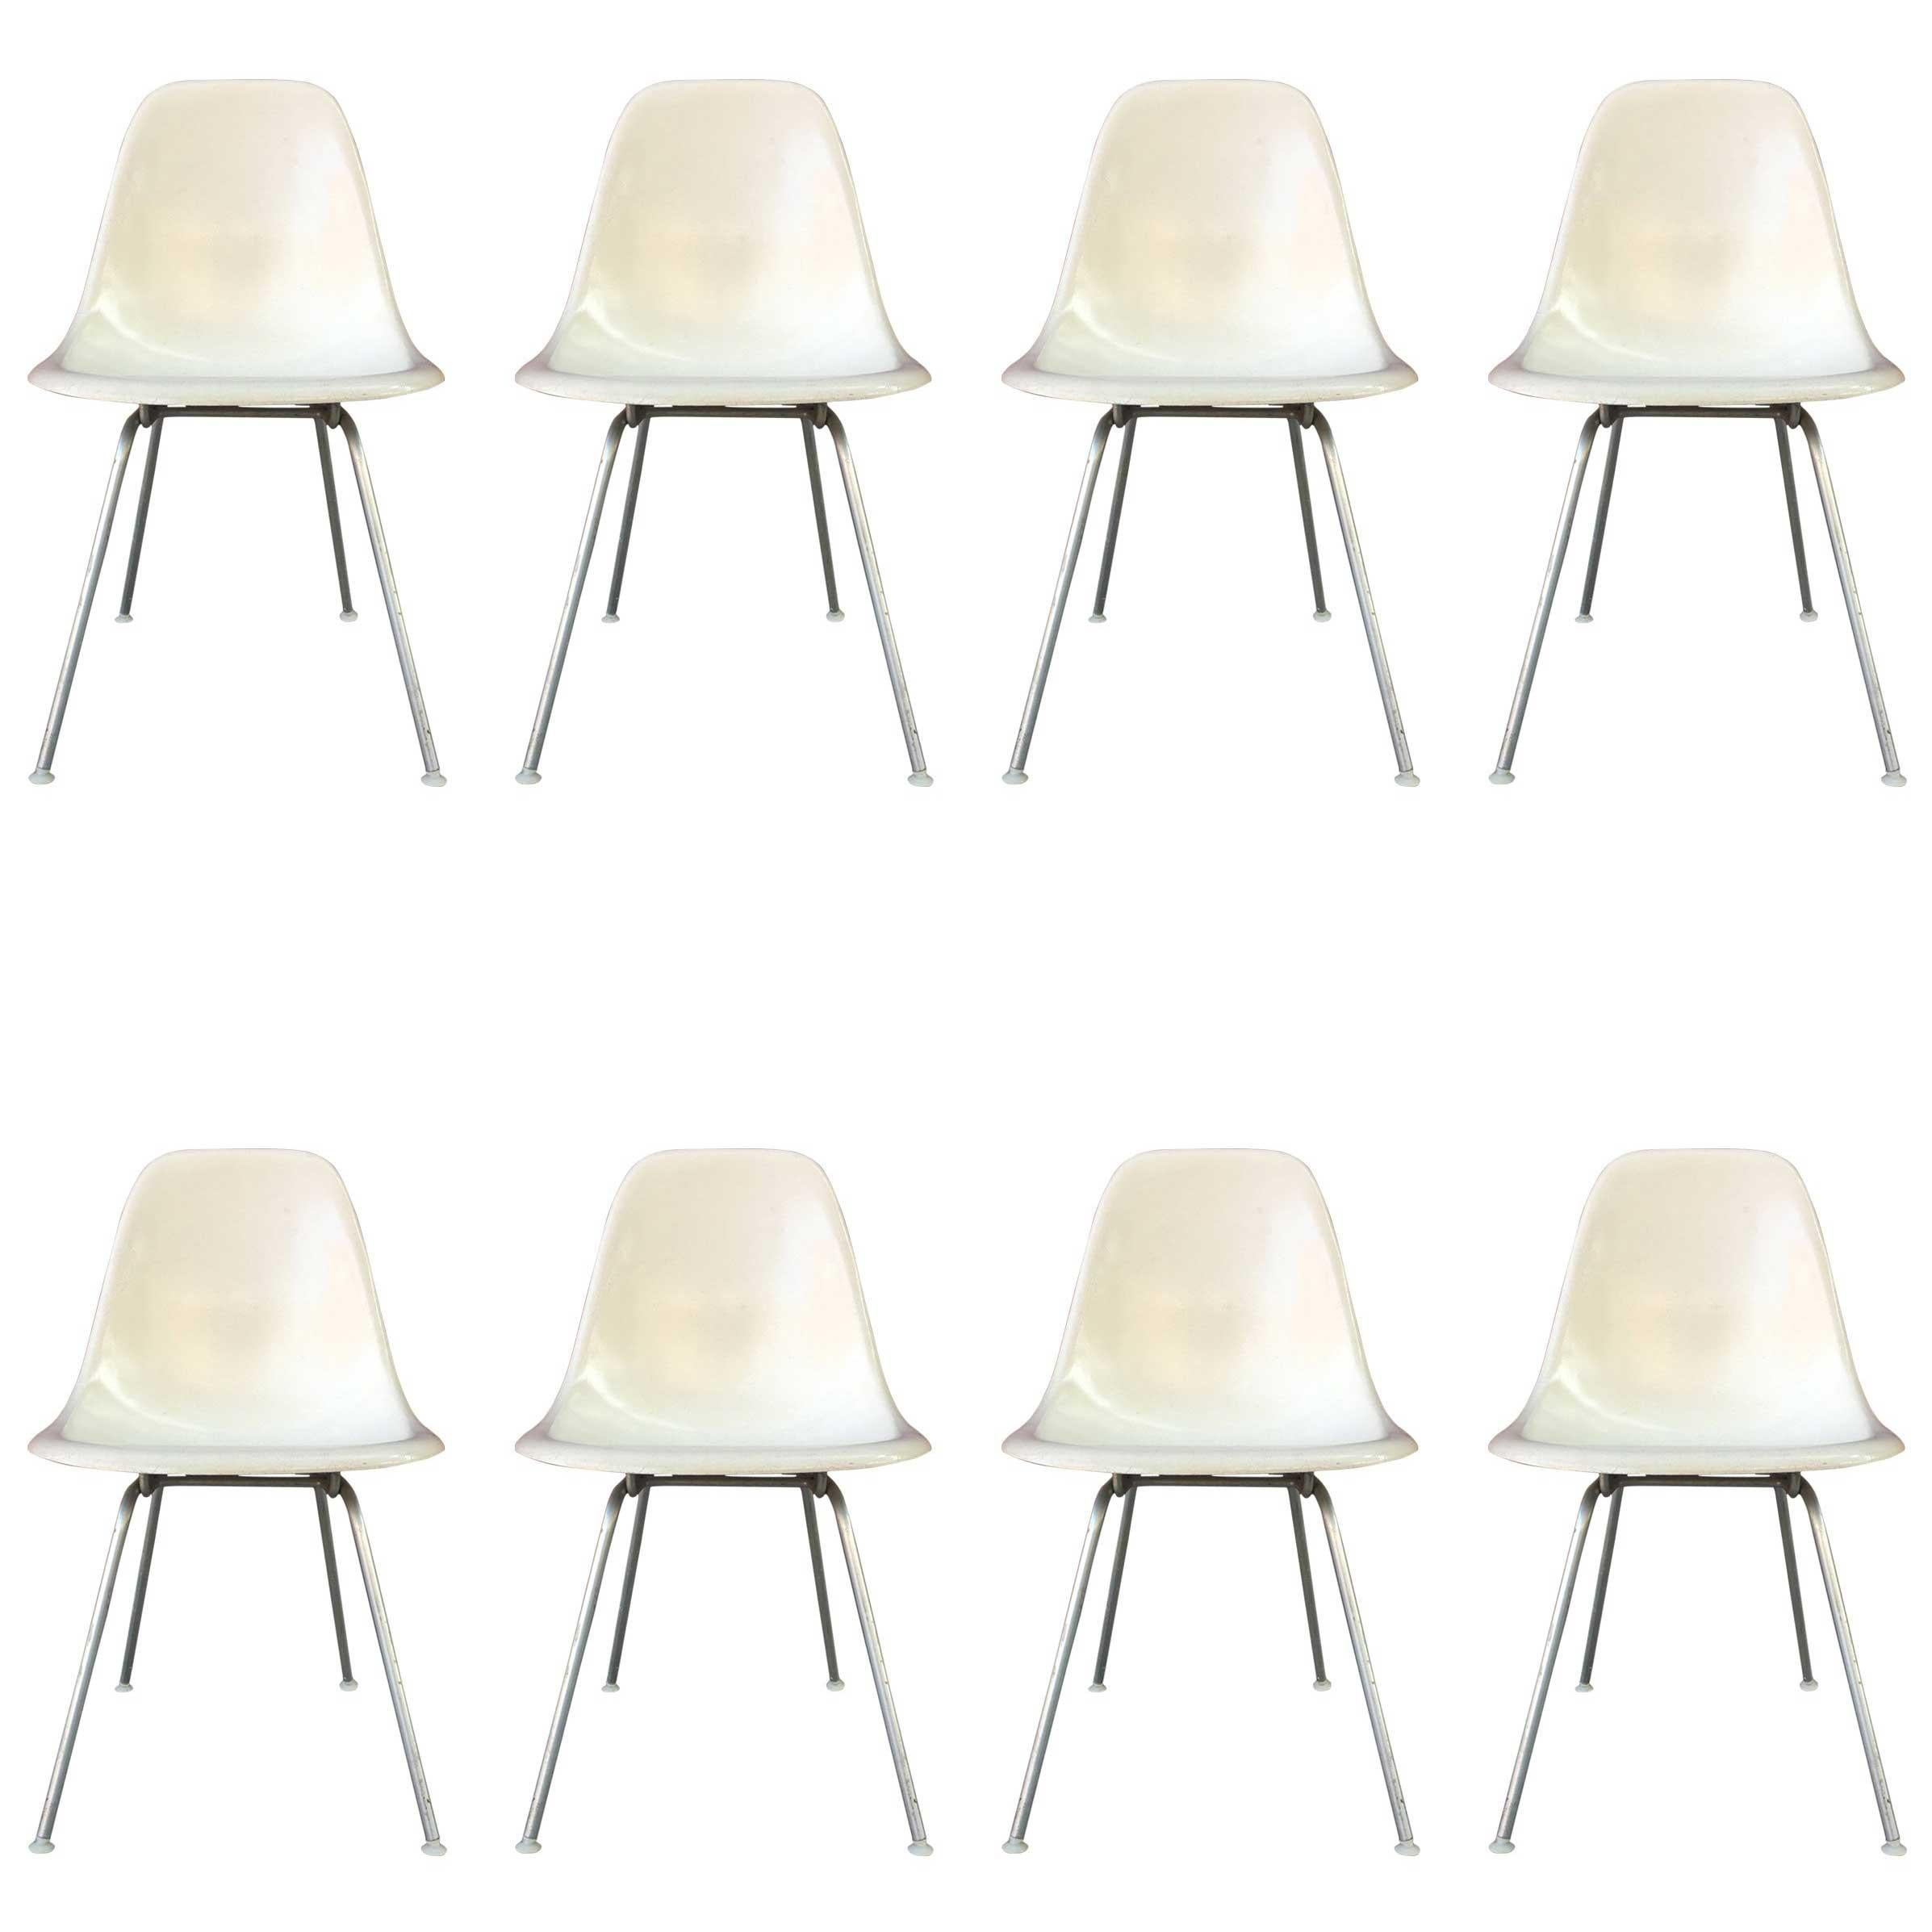 Eight Parchment Herman Miller Eames Dining Chairs